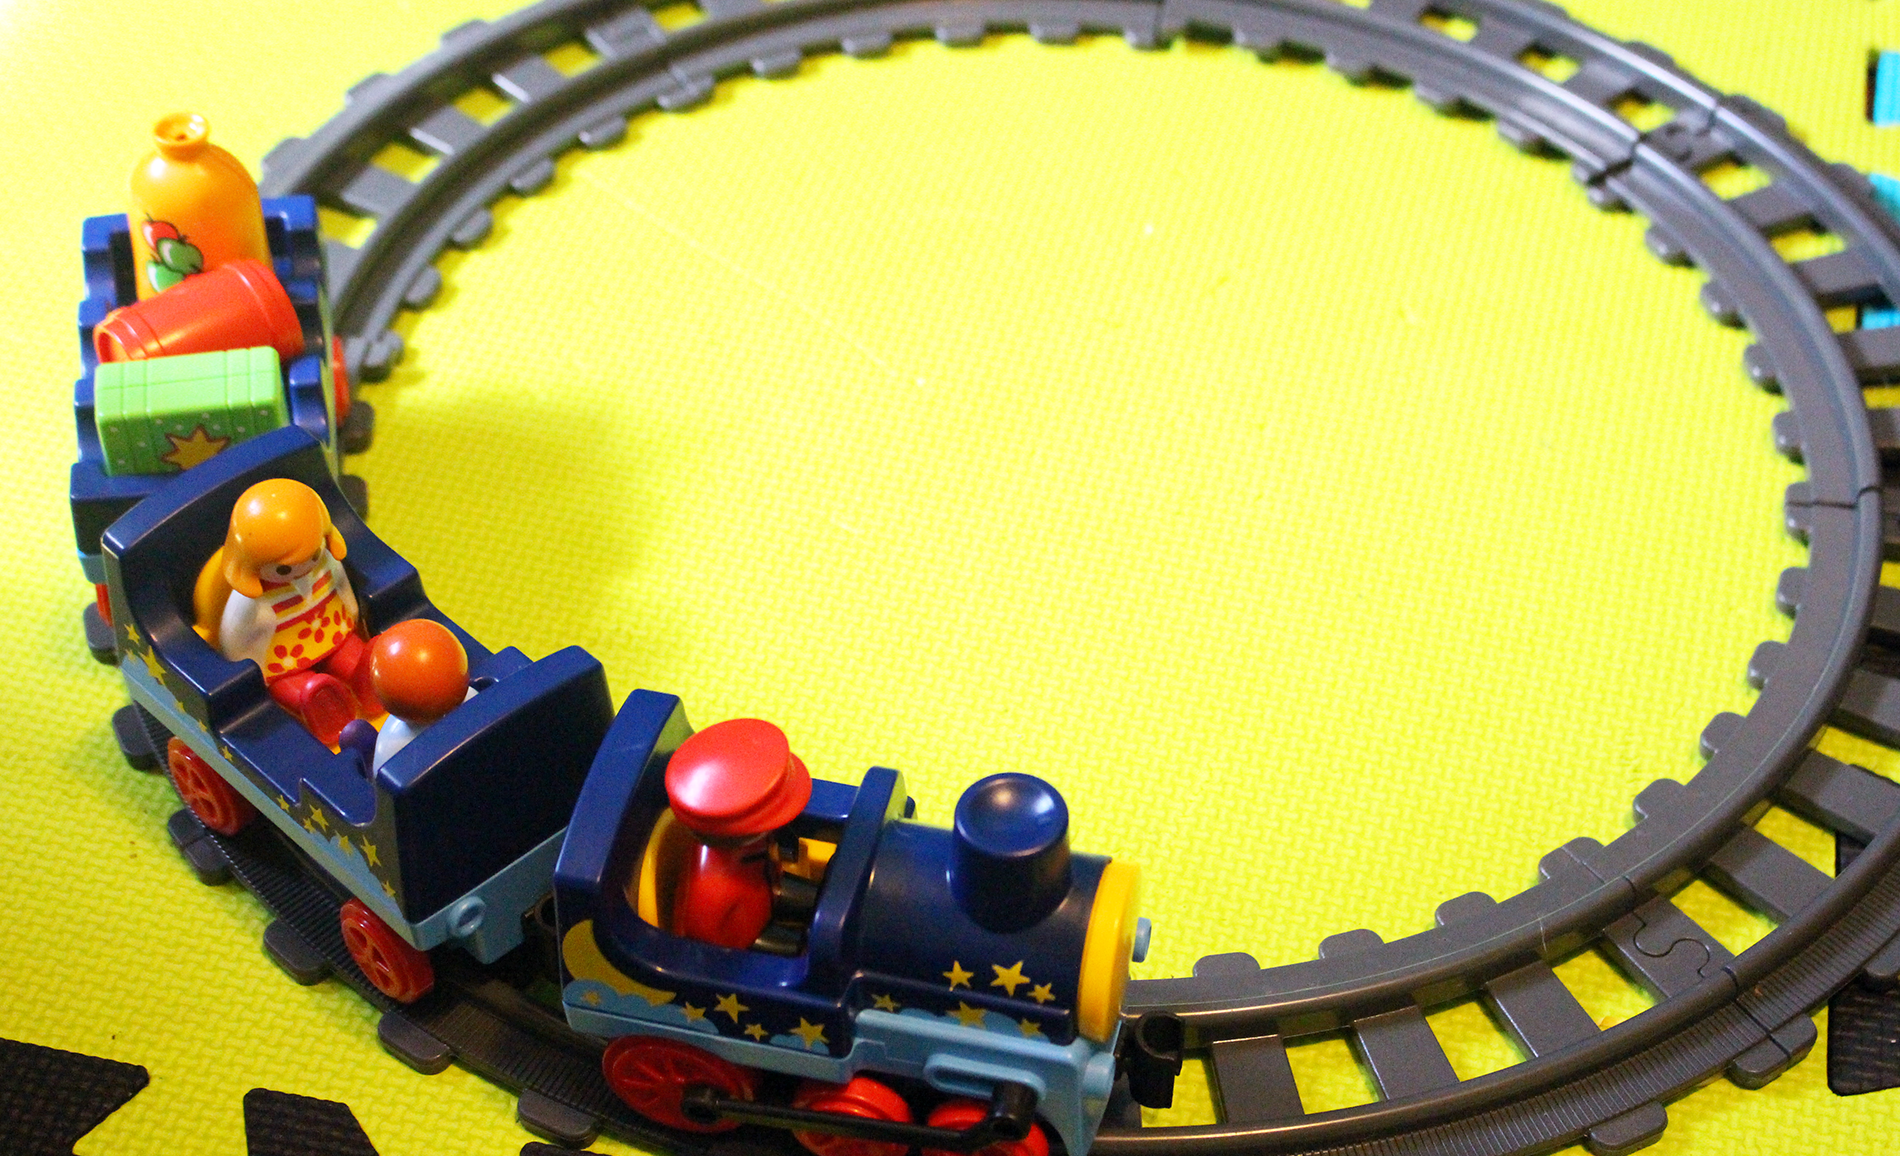 Chugging Along With the 1.2.3 Night Train with Track from Playmobil